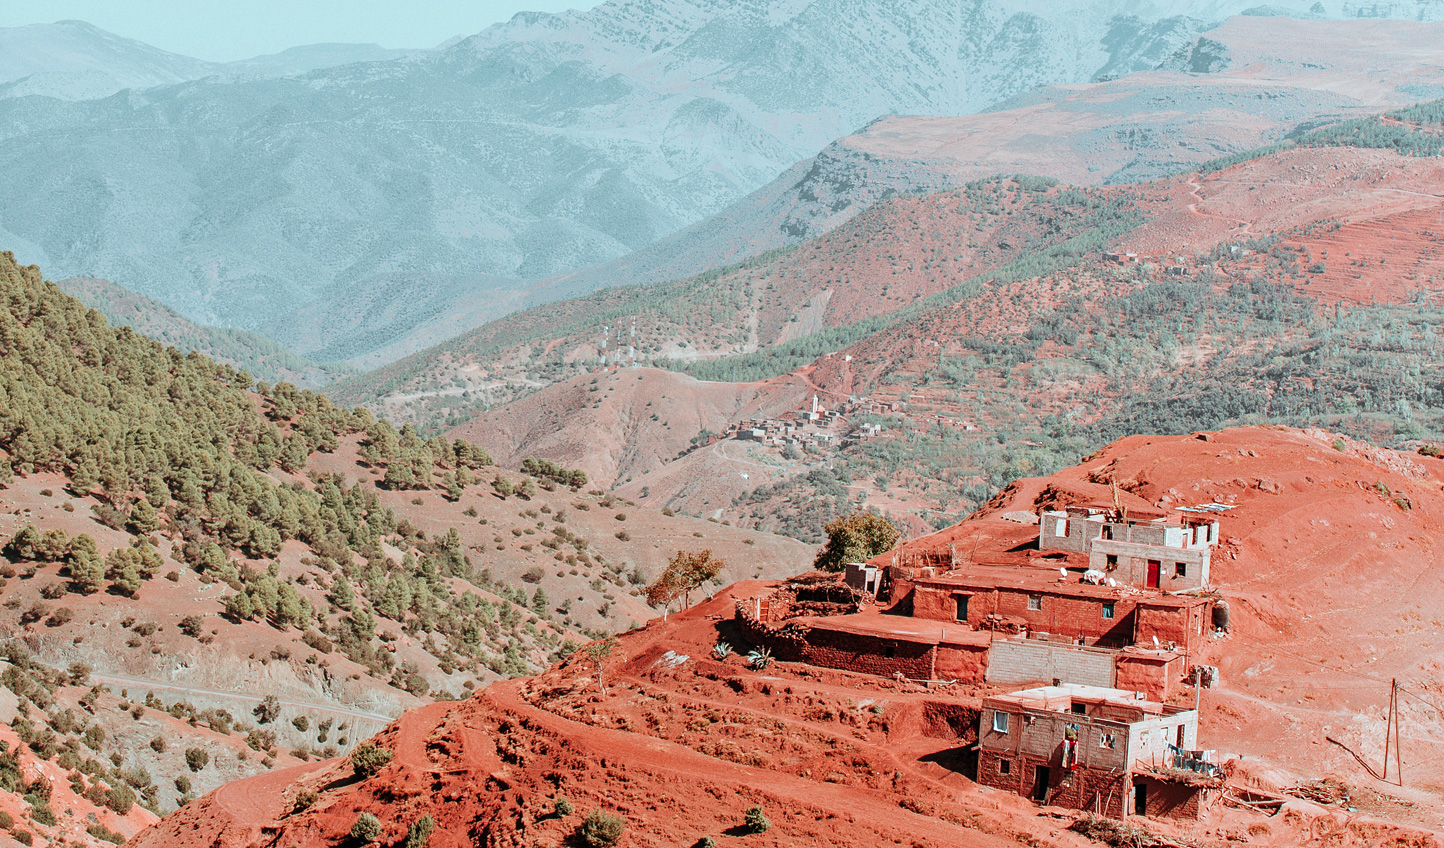 Valleys carve their way through the Atlas Mountains with isolated houses clinging to their sides